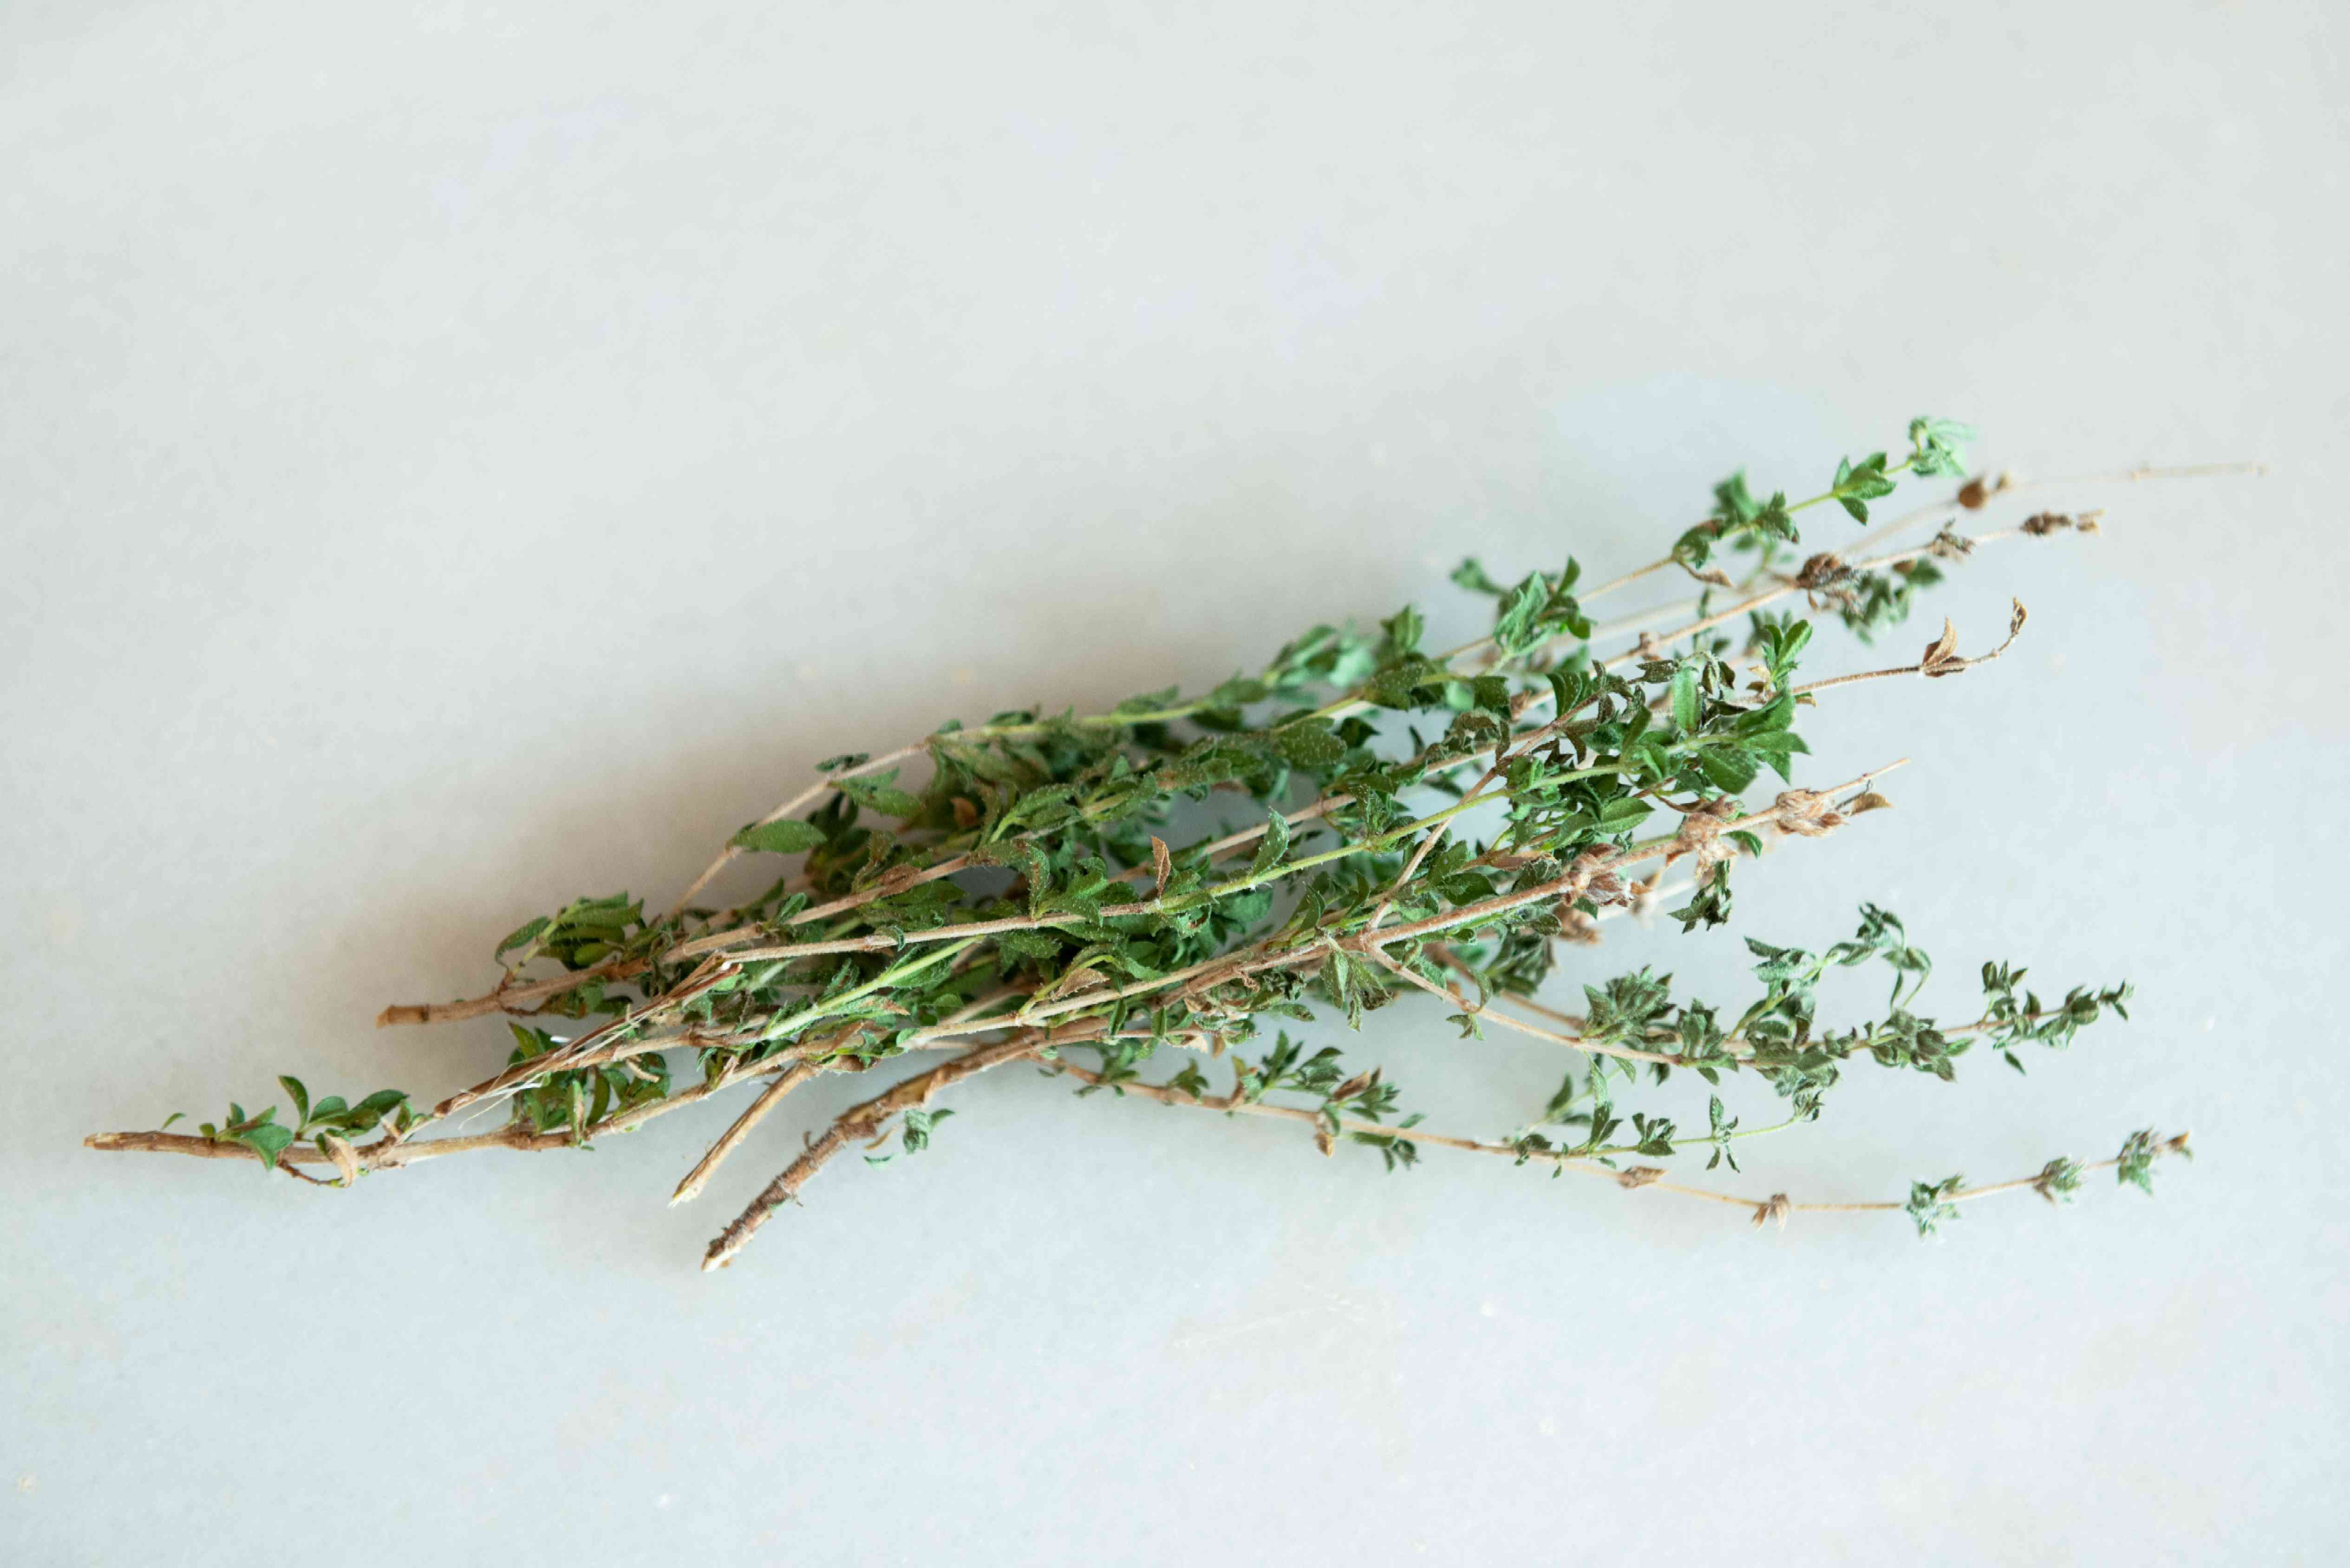 Summer savory herb stems lying in a stack on white surface